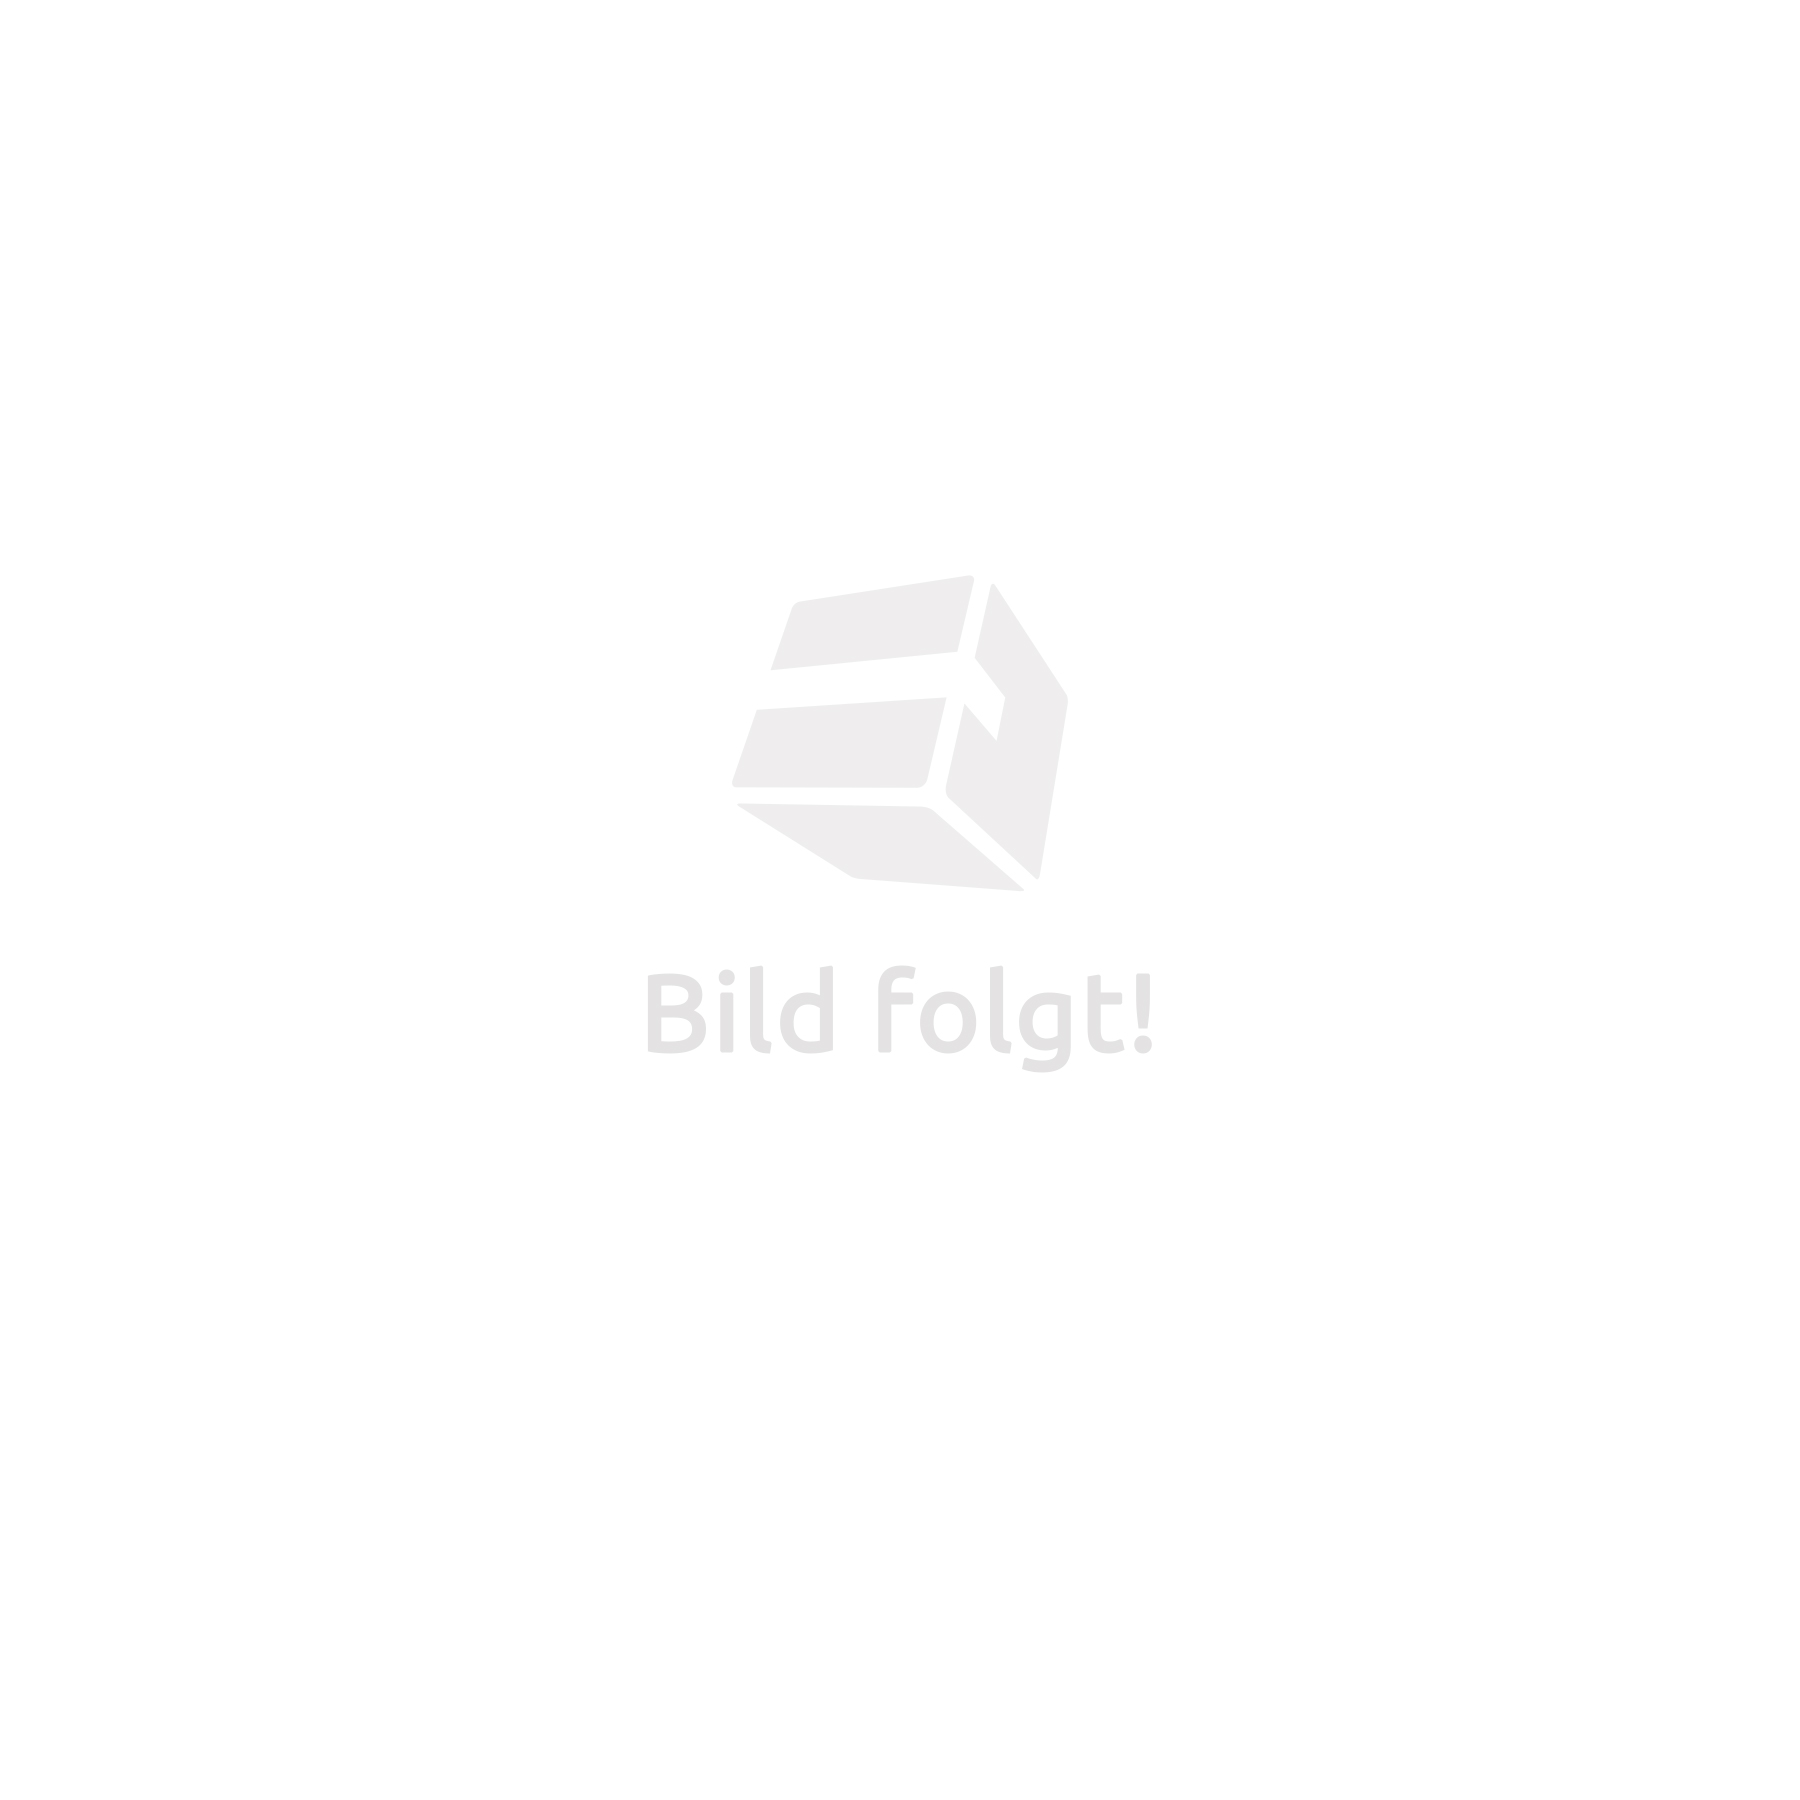 velo d appartement elliptique ergometre fitness cardio gym. Black Bedroom Furniture Sets. Home Design Ideas